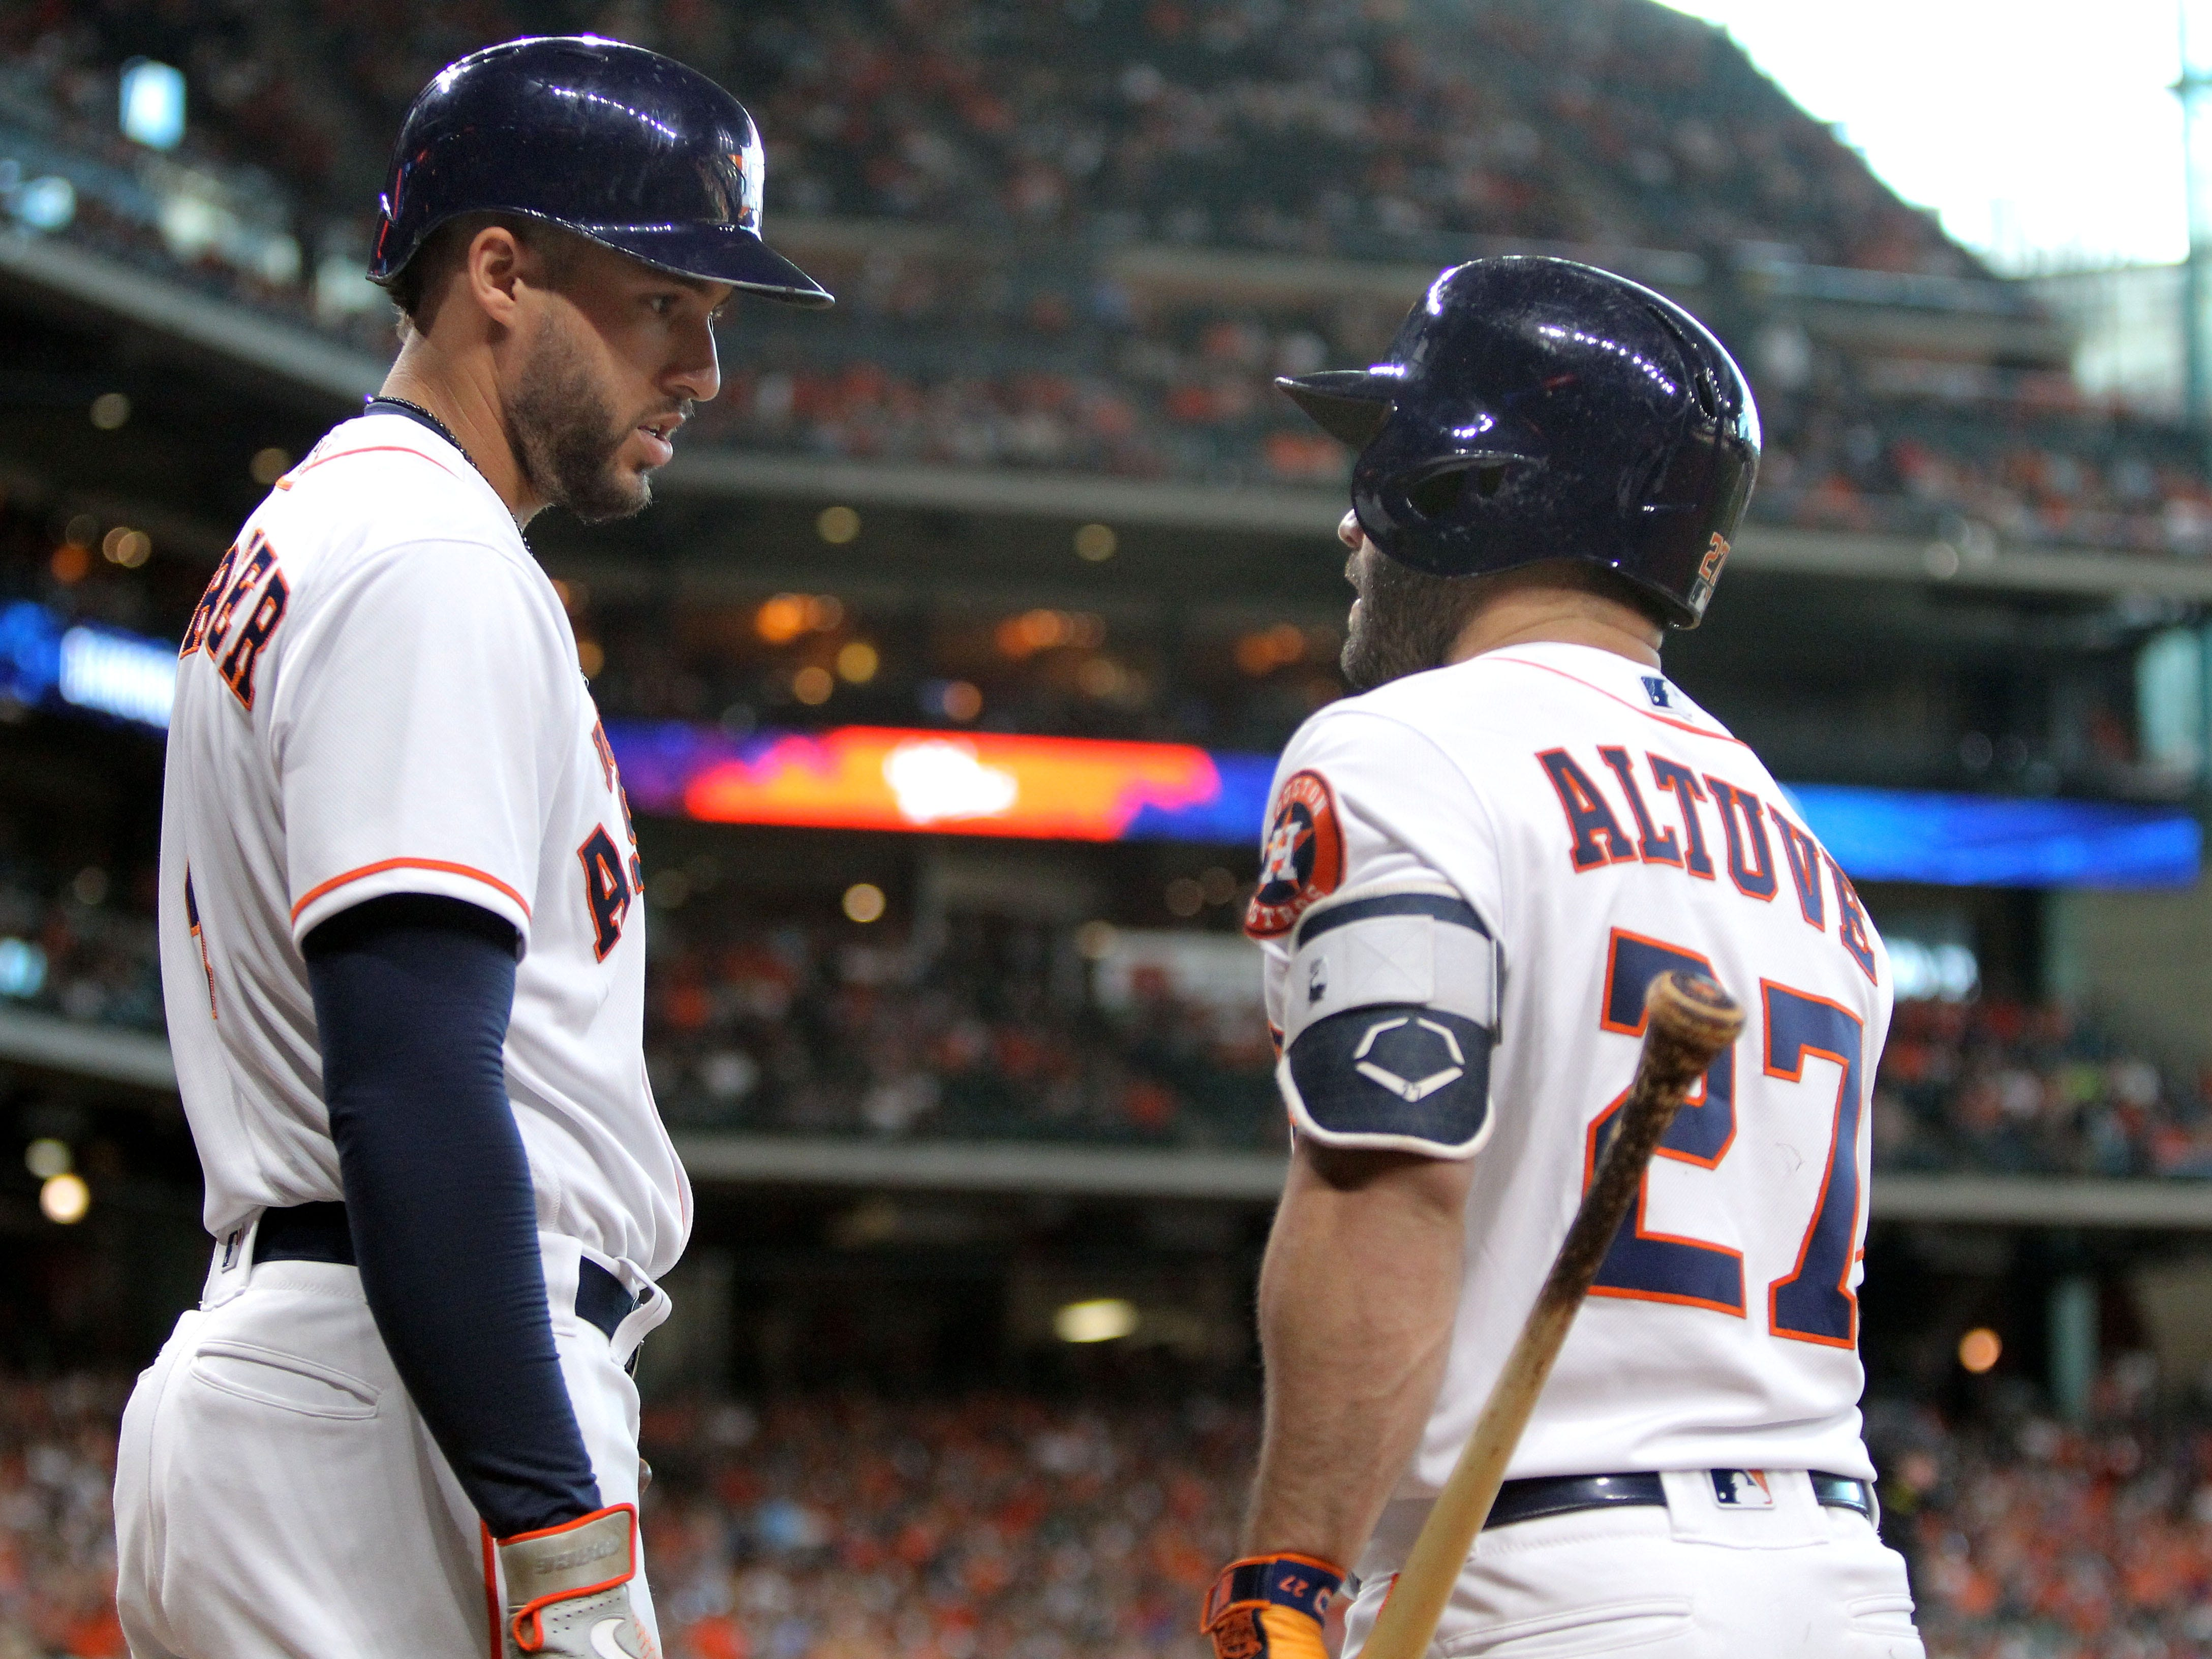 Sep 15, 2018; Houston, TX, USA; Houston Astros center fielder George Springer (4, left) talks with Houston Astros second baseman Jose Altuve (27) during the first inning against the Arizona Diamondbacks at Minute Maid Park. Mandatory Credit: Erik Williams-USA TODAY Sports